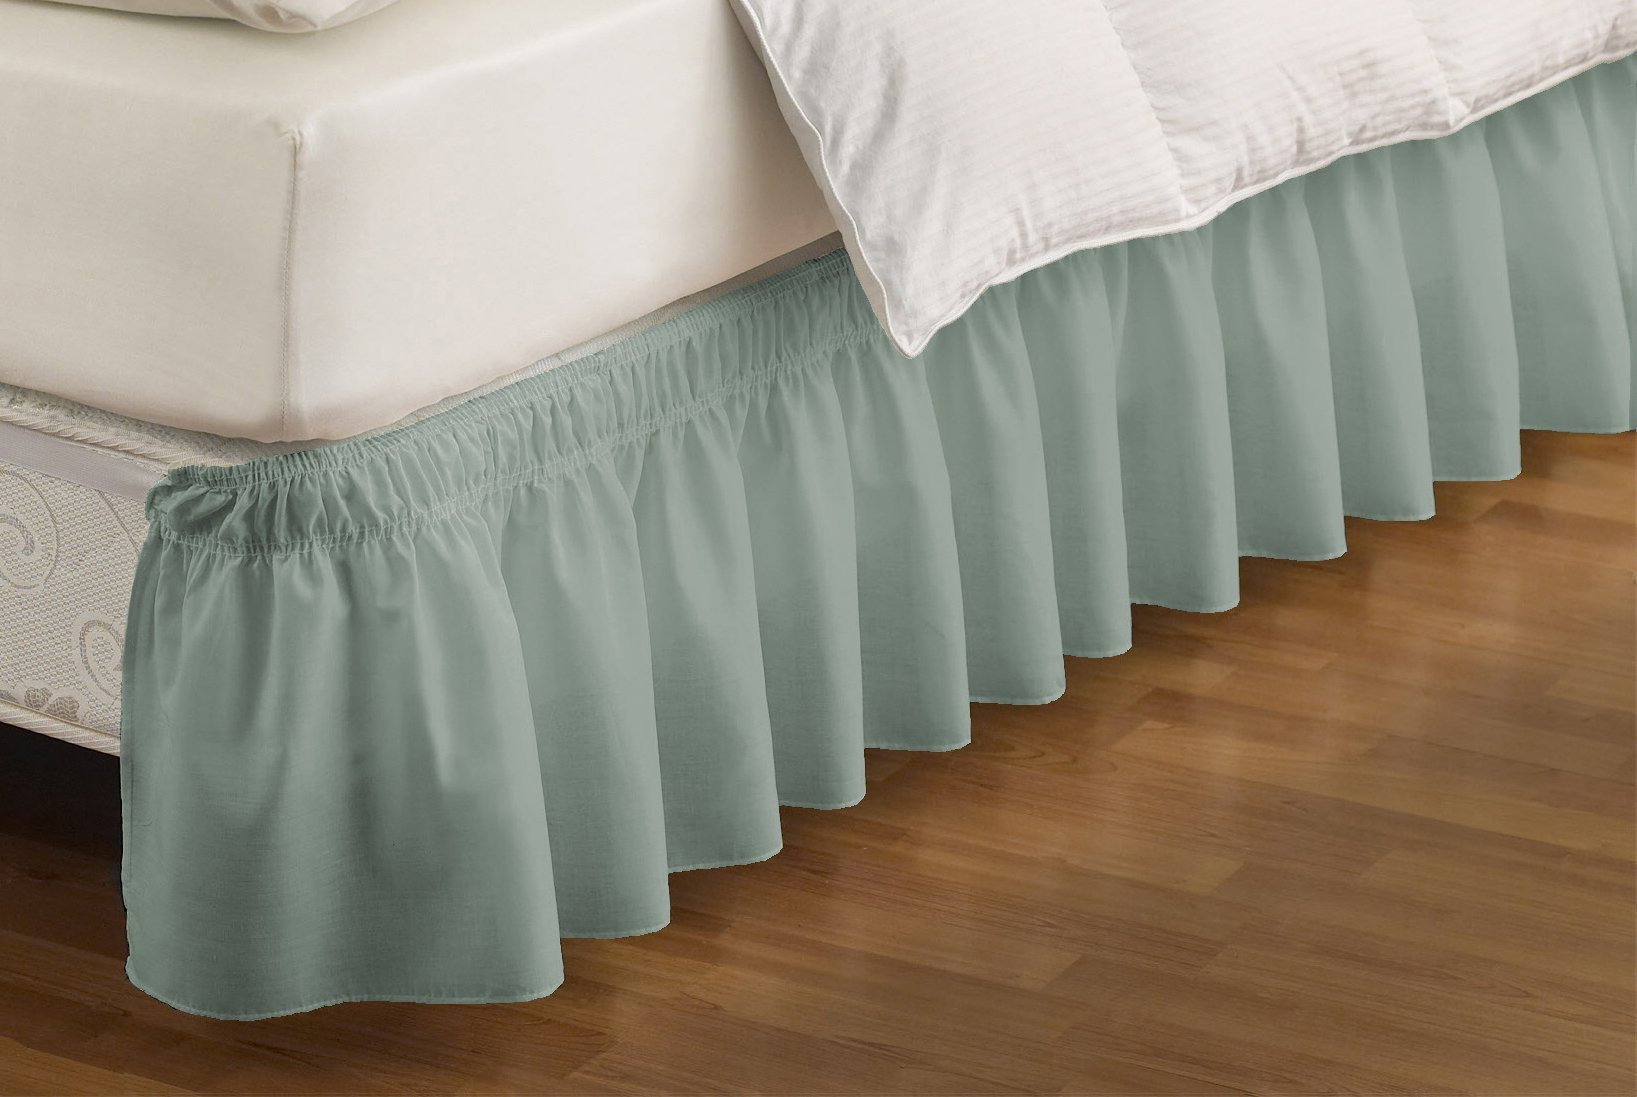 EasyFit 11577BEDDQKGSPA Wrap Around Solid Ruffled Queen/King Bed Skirt 80-Inch by 60-Inch with 15-Inch drop, Spa